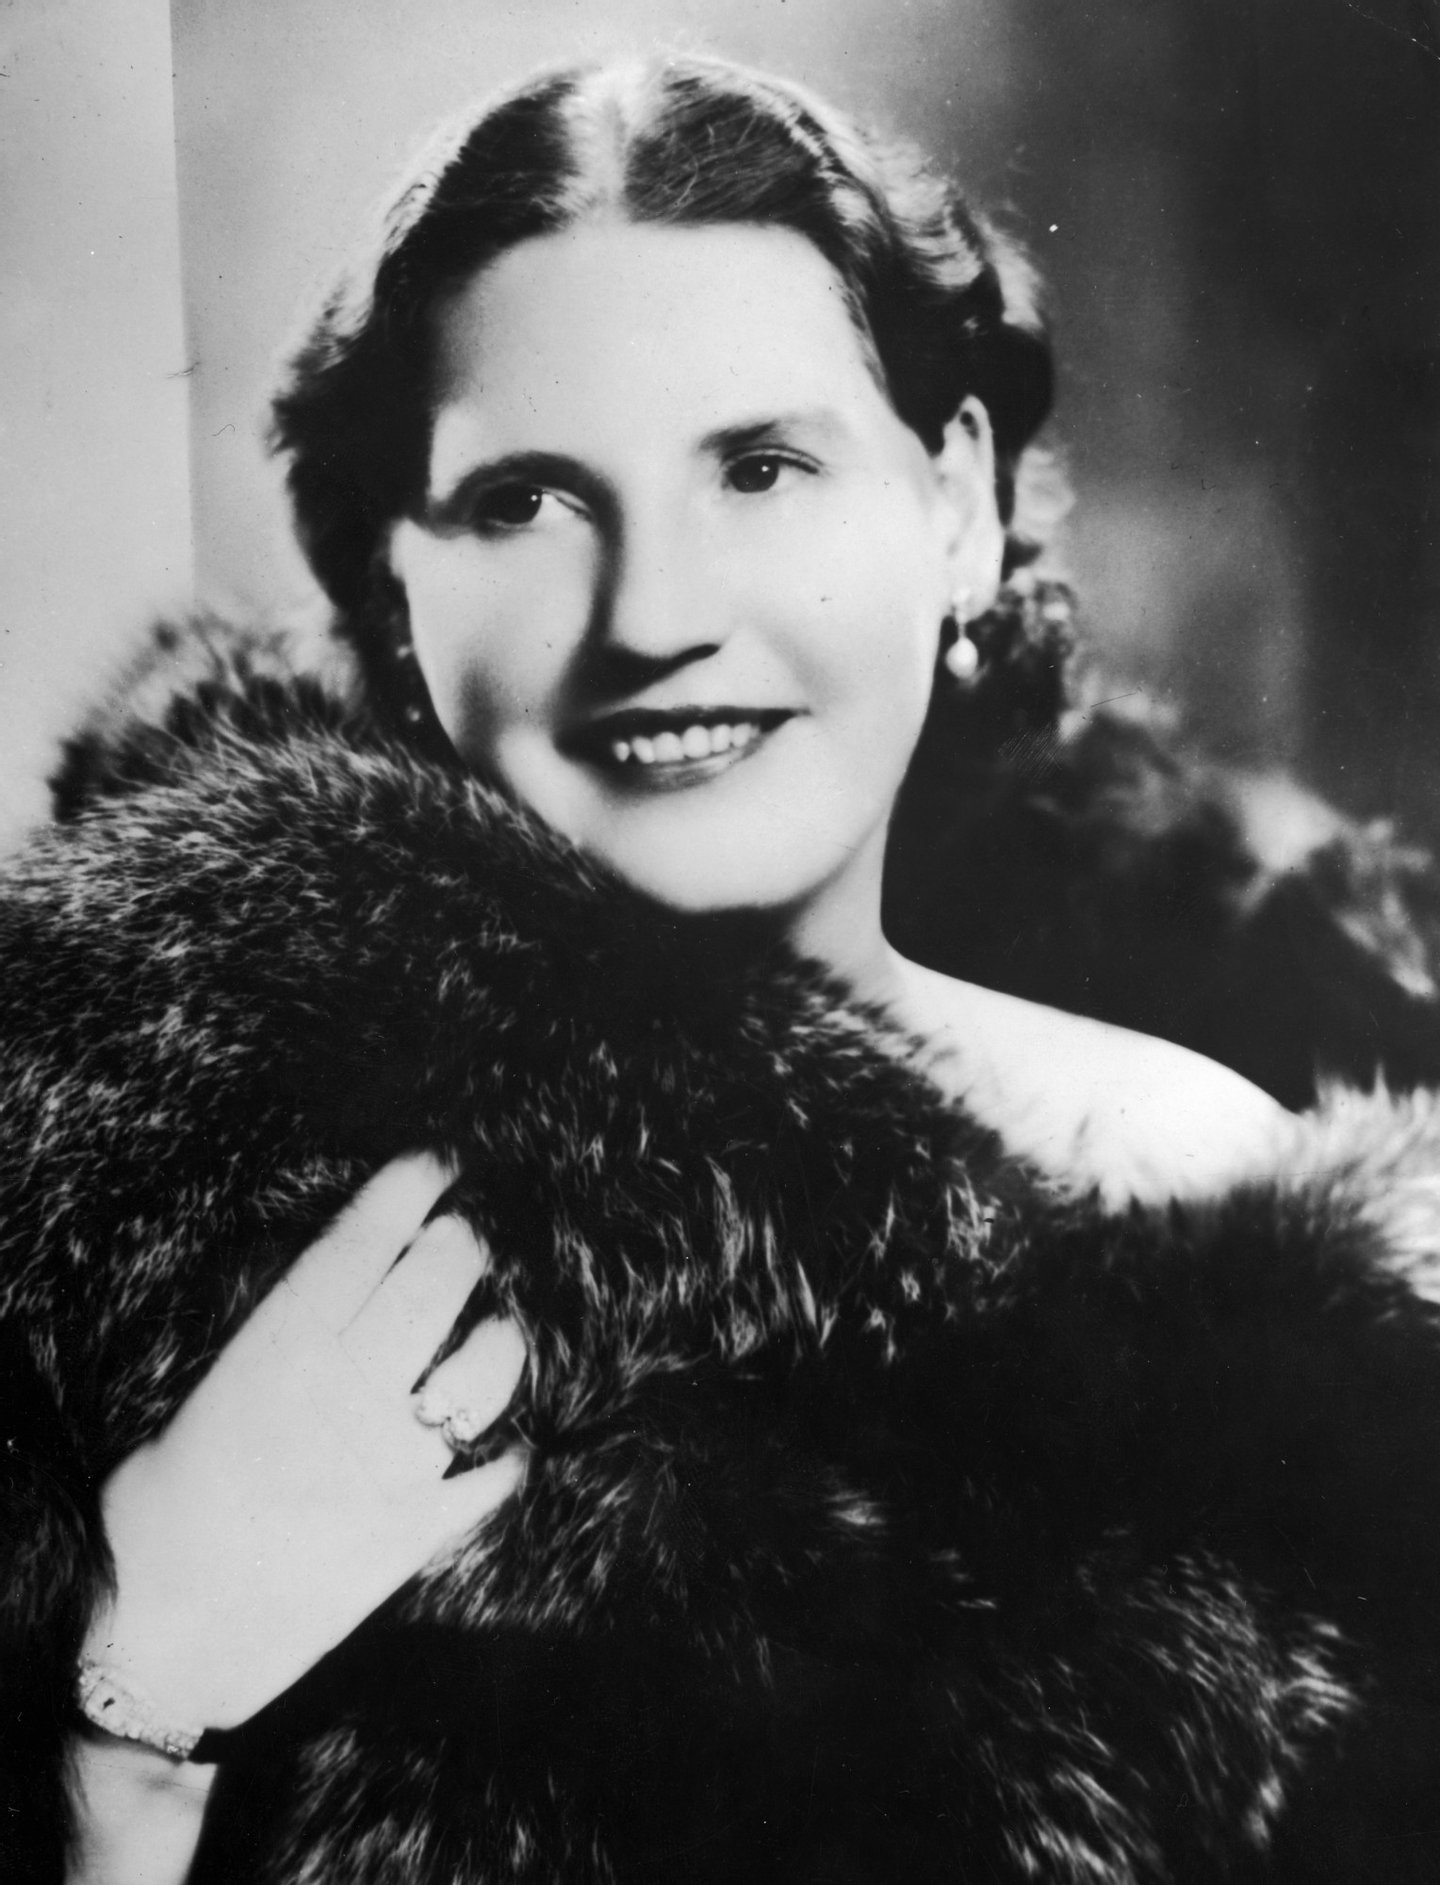 circa 1935: Norwegian soprano Kirsten Flagstad (1895 - 1962), famous for her Wagnerian roles and interpretation of the songs of Grieg. (Photo by General Photographic Agency/Getty Images)